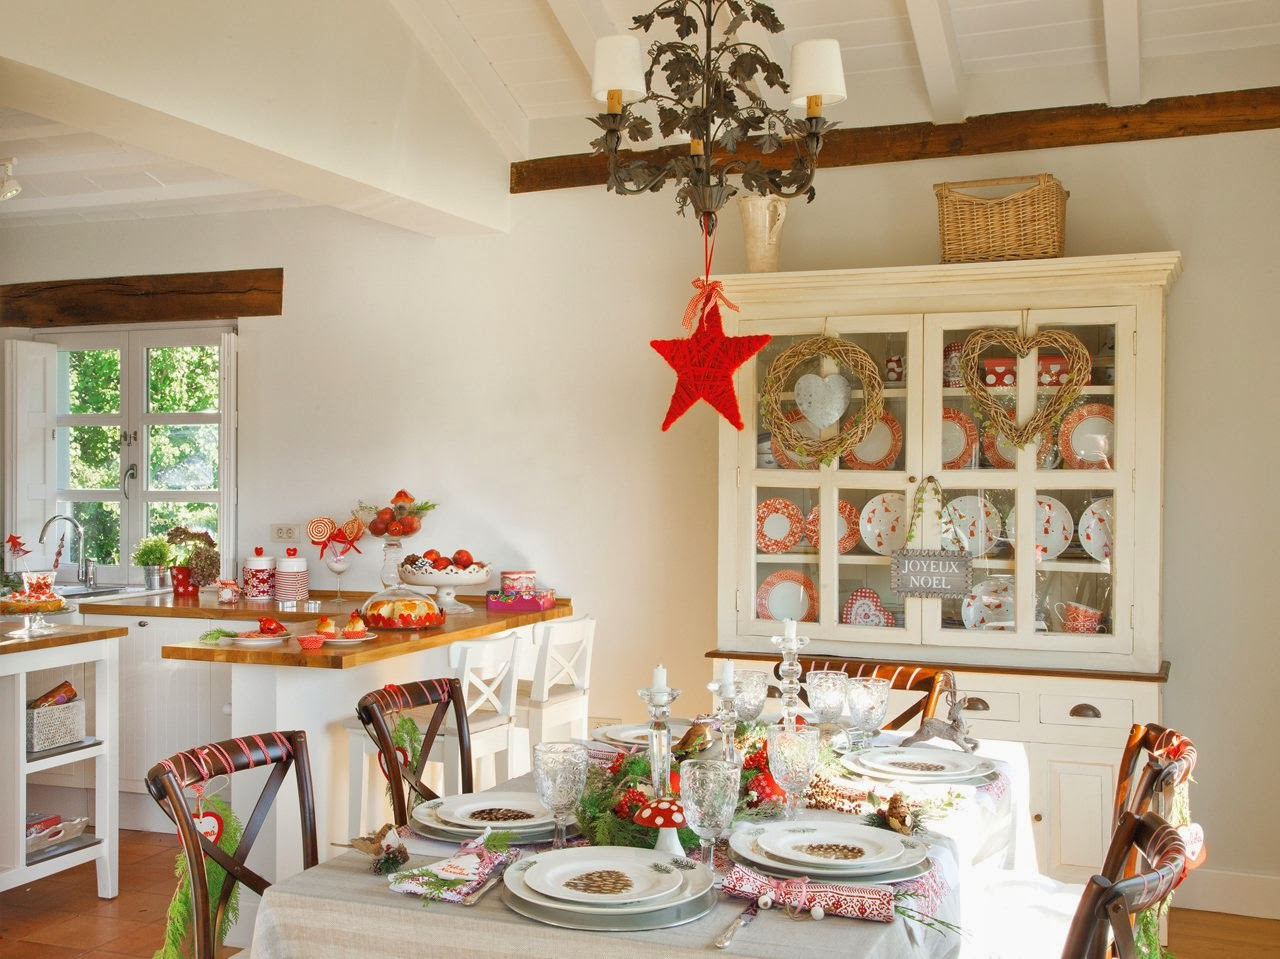 Navidad decoraci n good morning style - Decoracion para mesa navidena ...